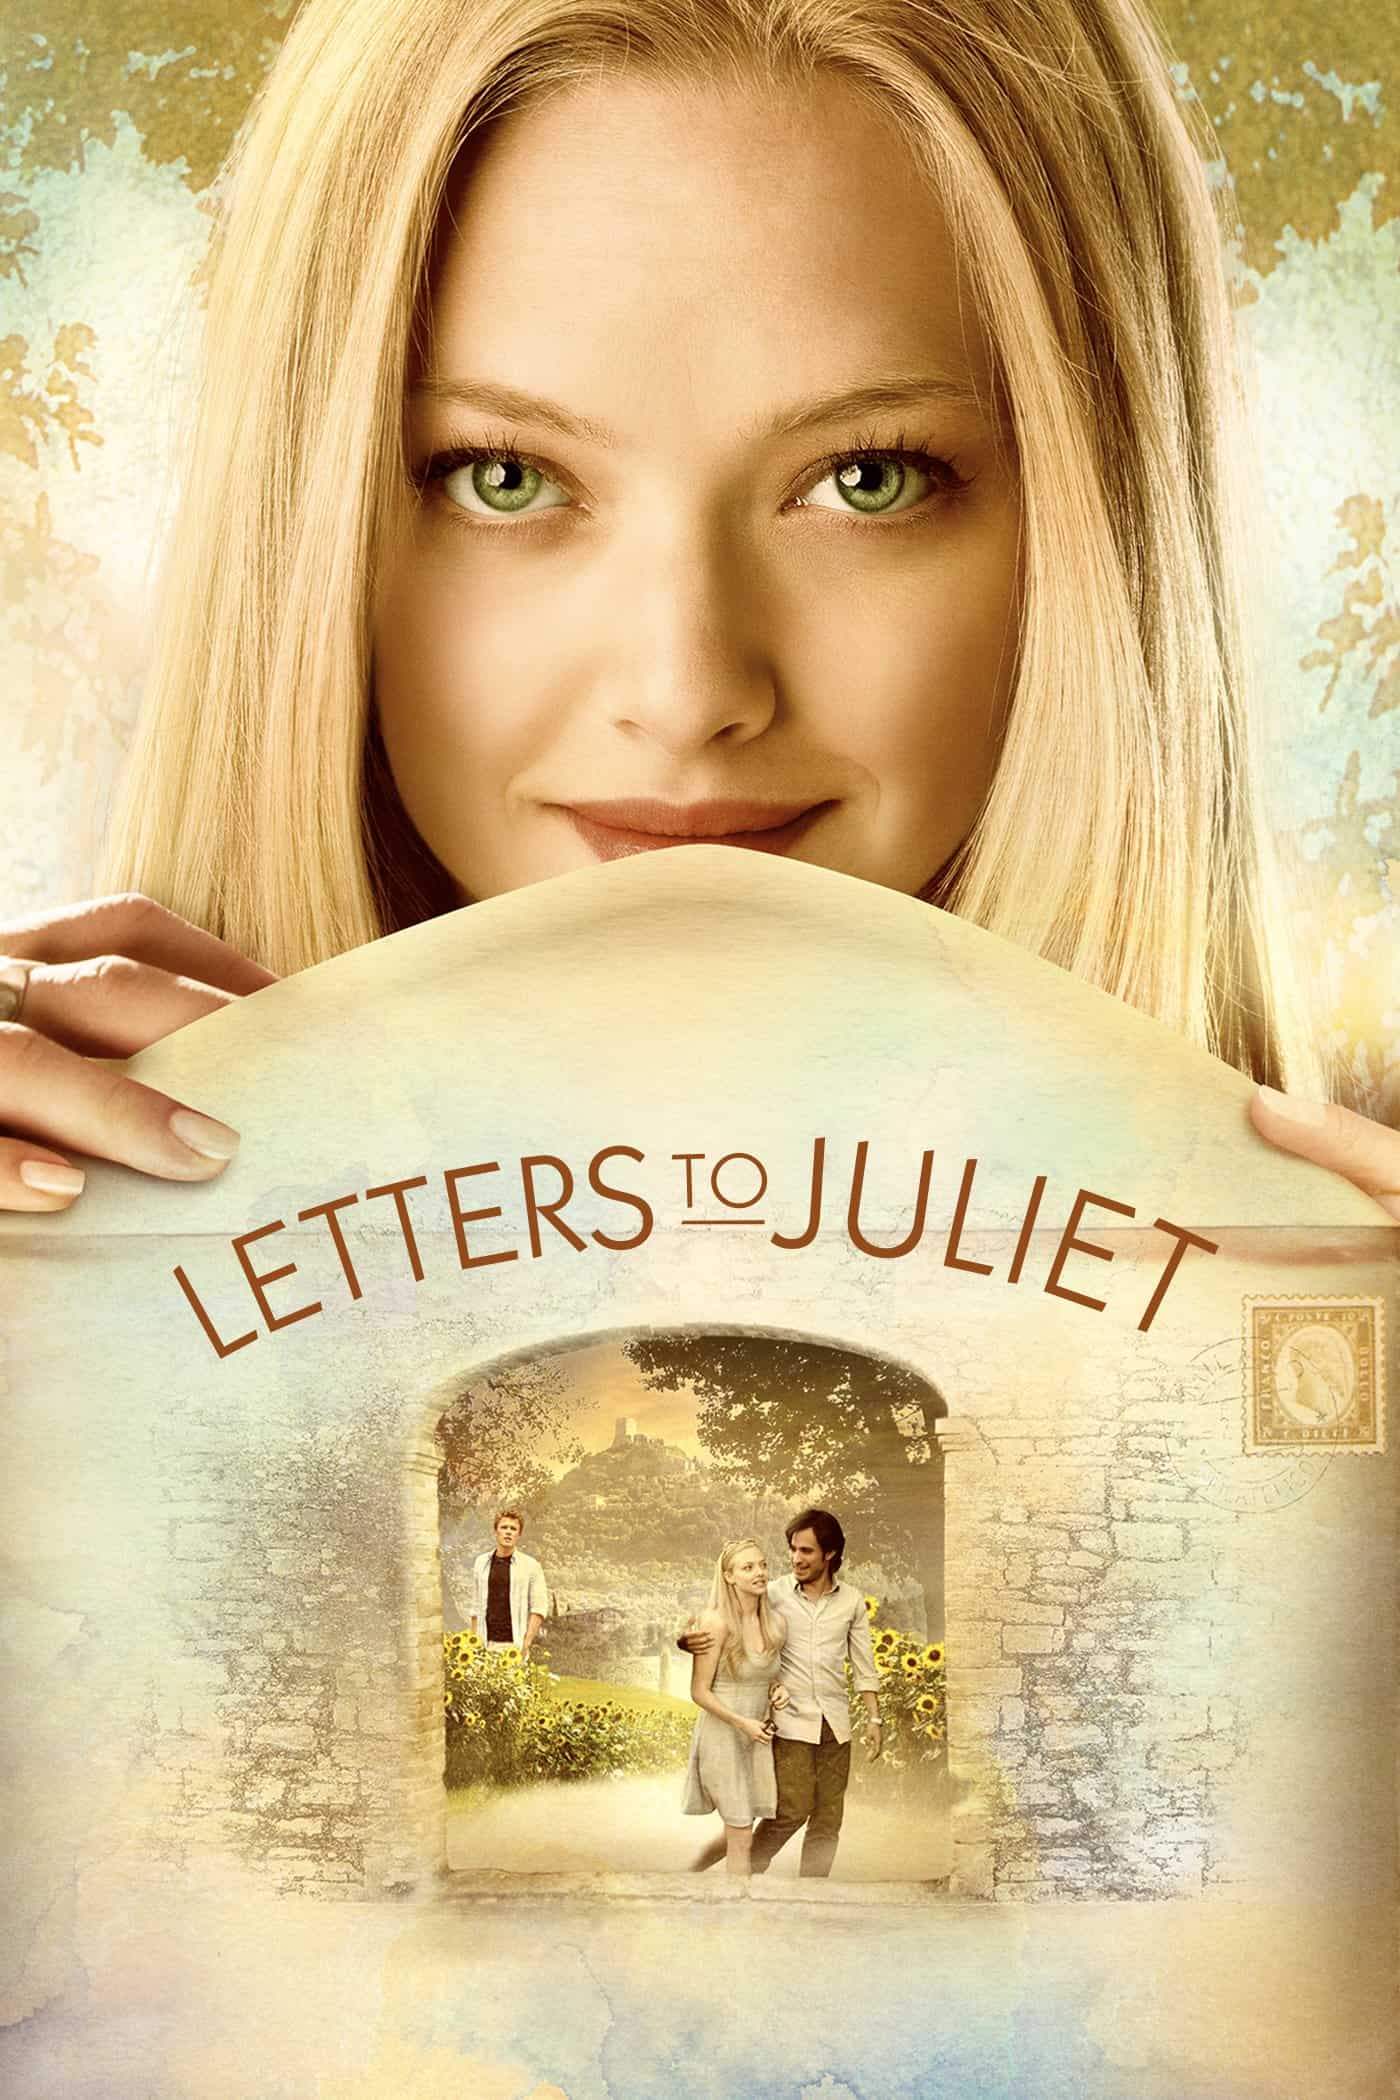 Letters to Juliet, 2010